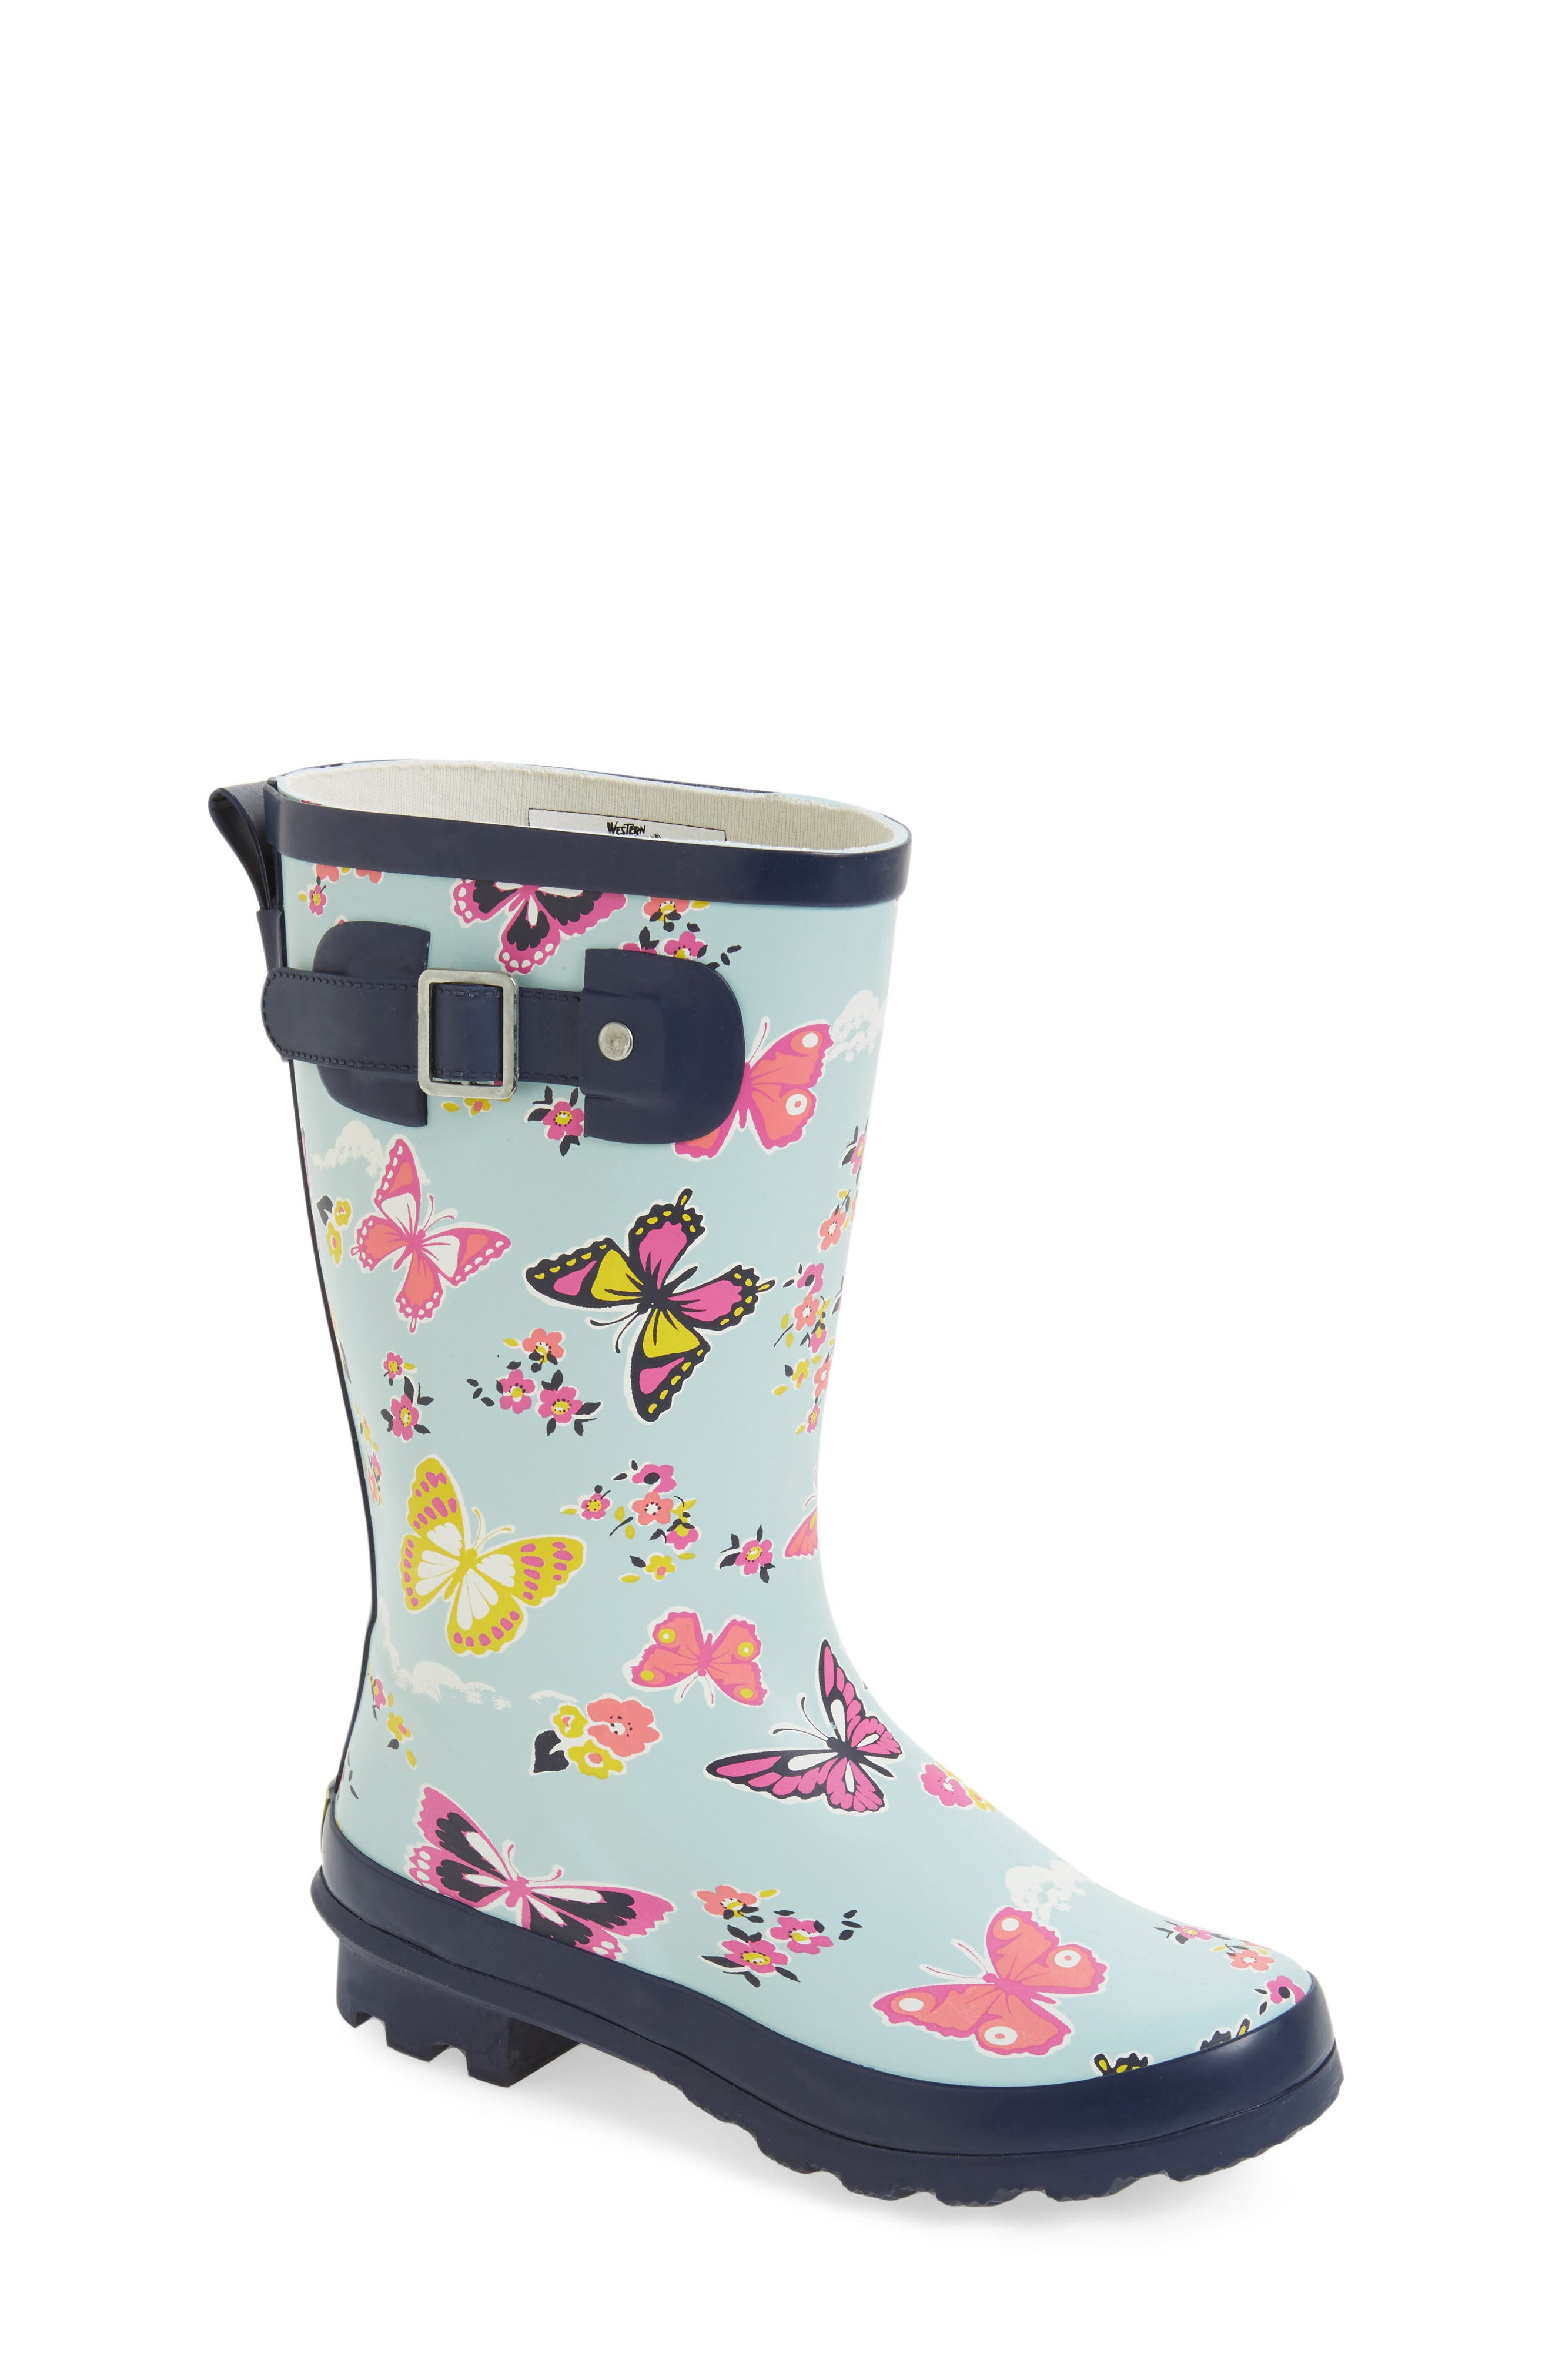 WESTERN CHIEF Classic Butterfly Floral Rain Boot